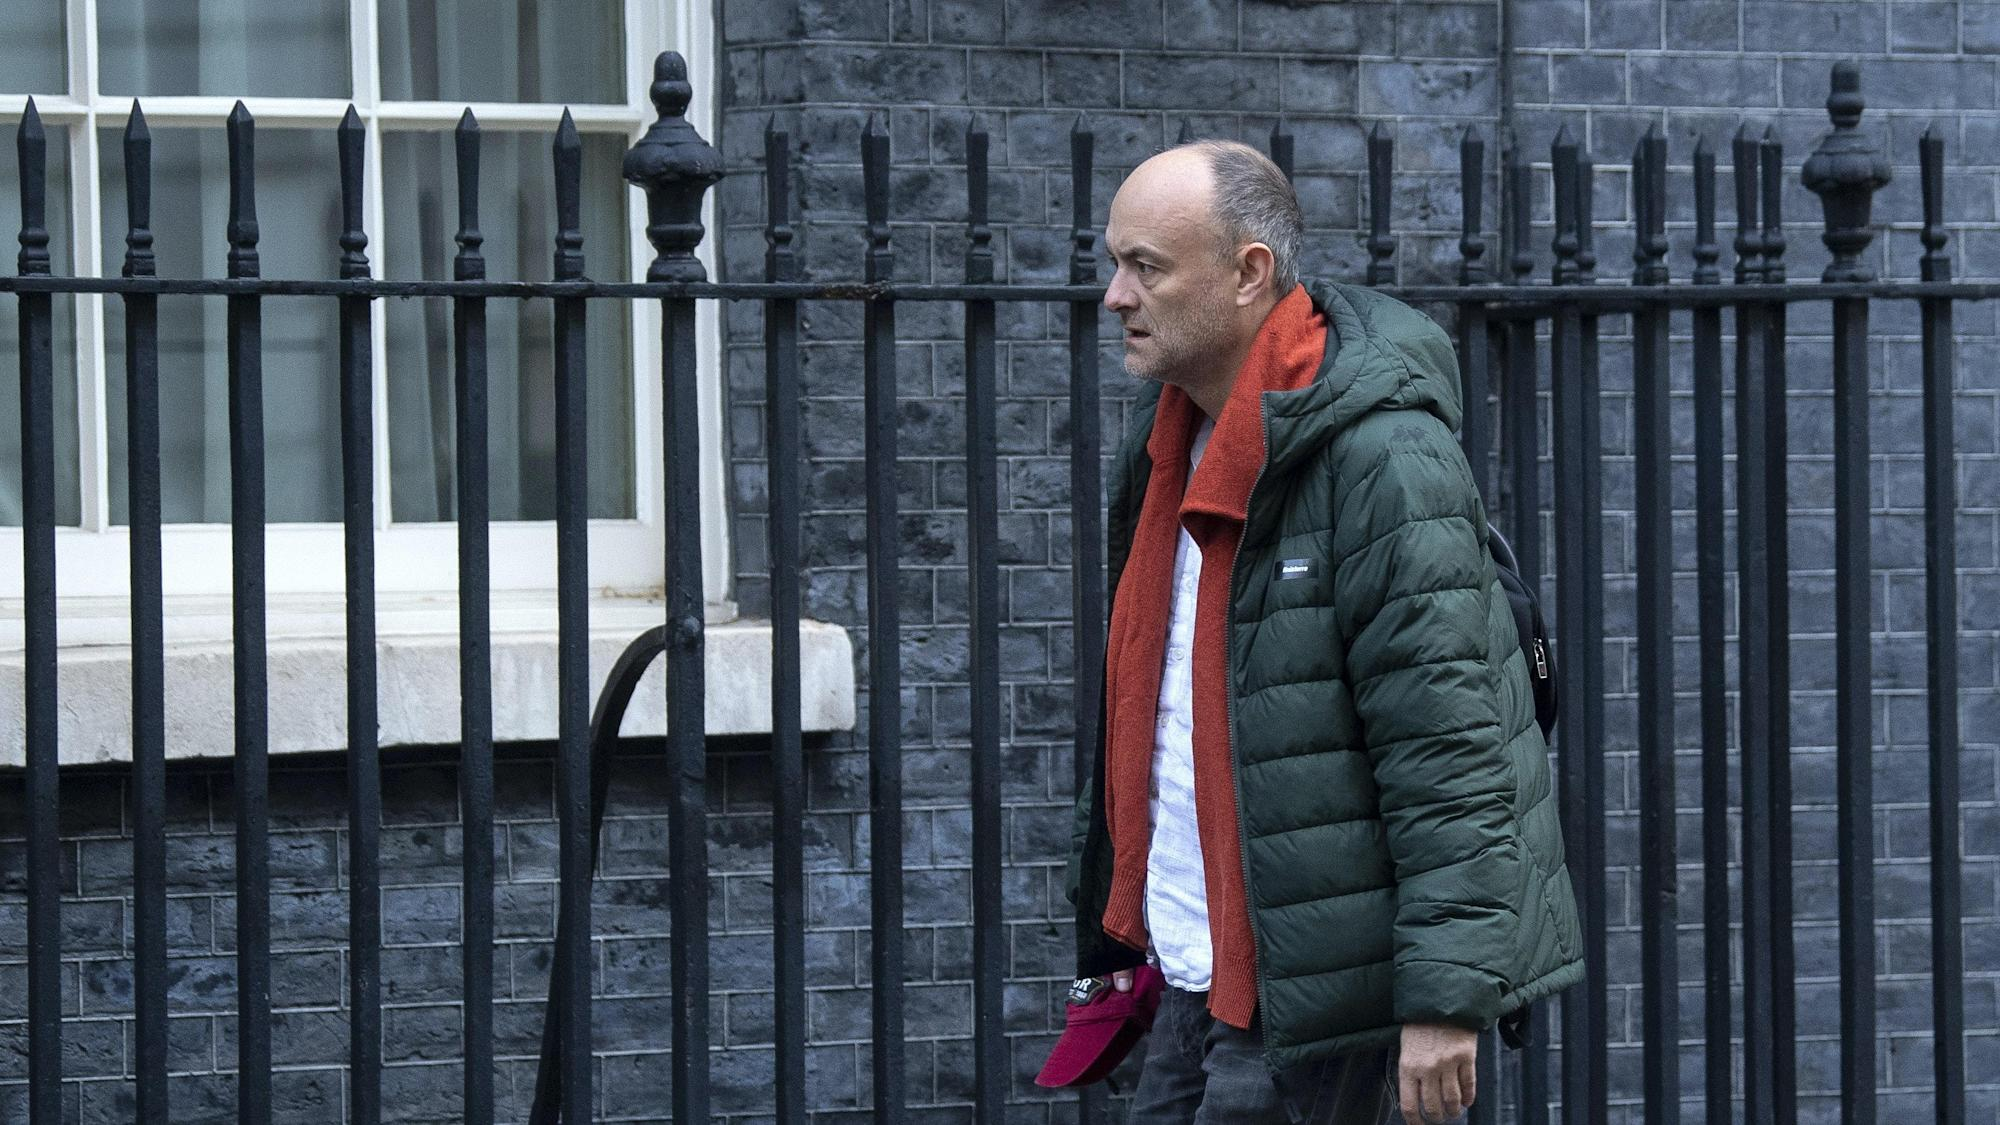 Dominic Cummings: The Brexit folk hero who vowed to shake up Whitehall